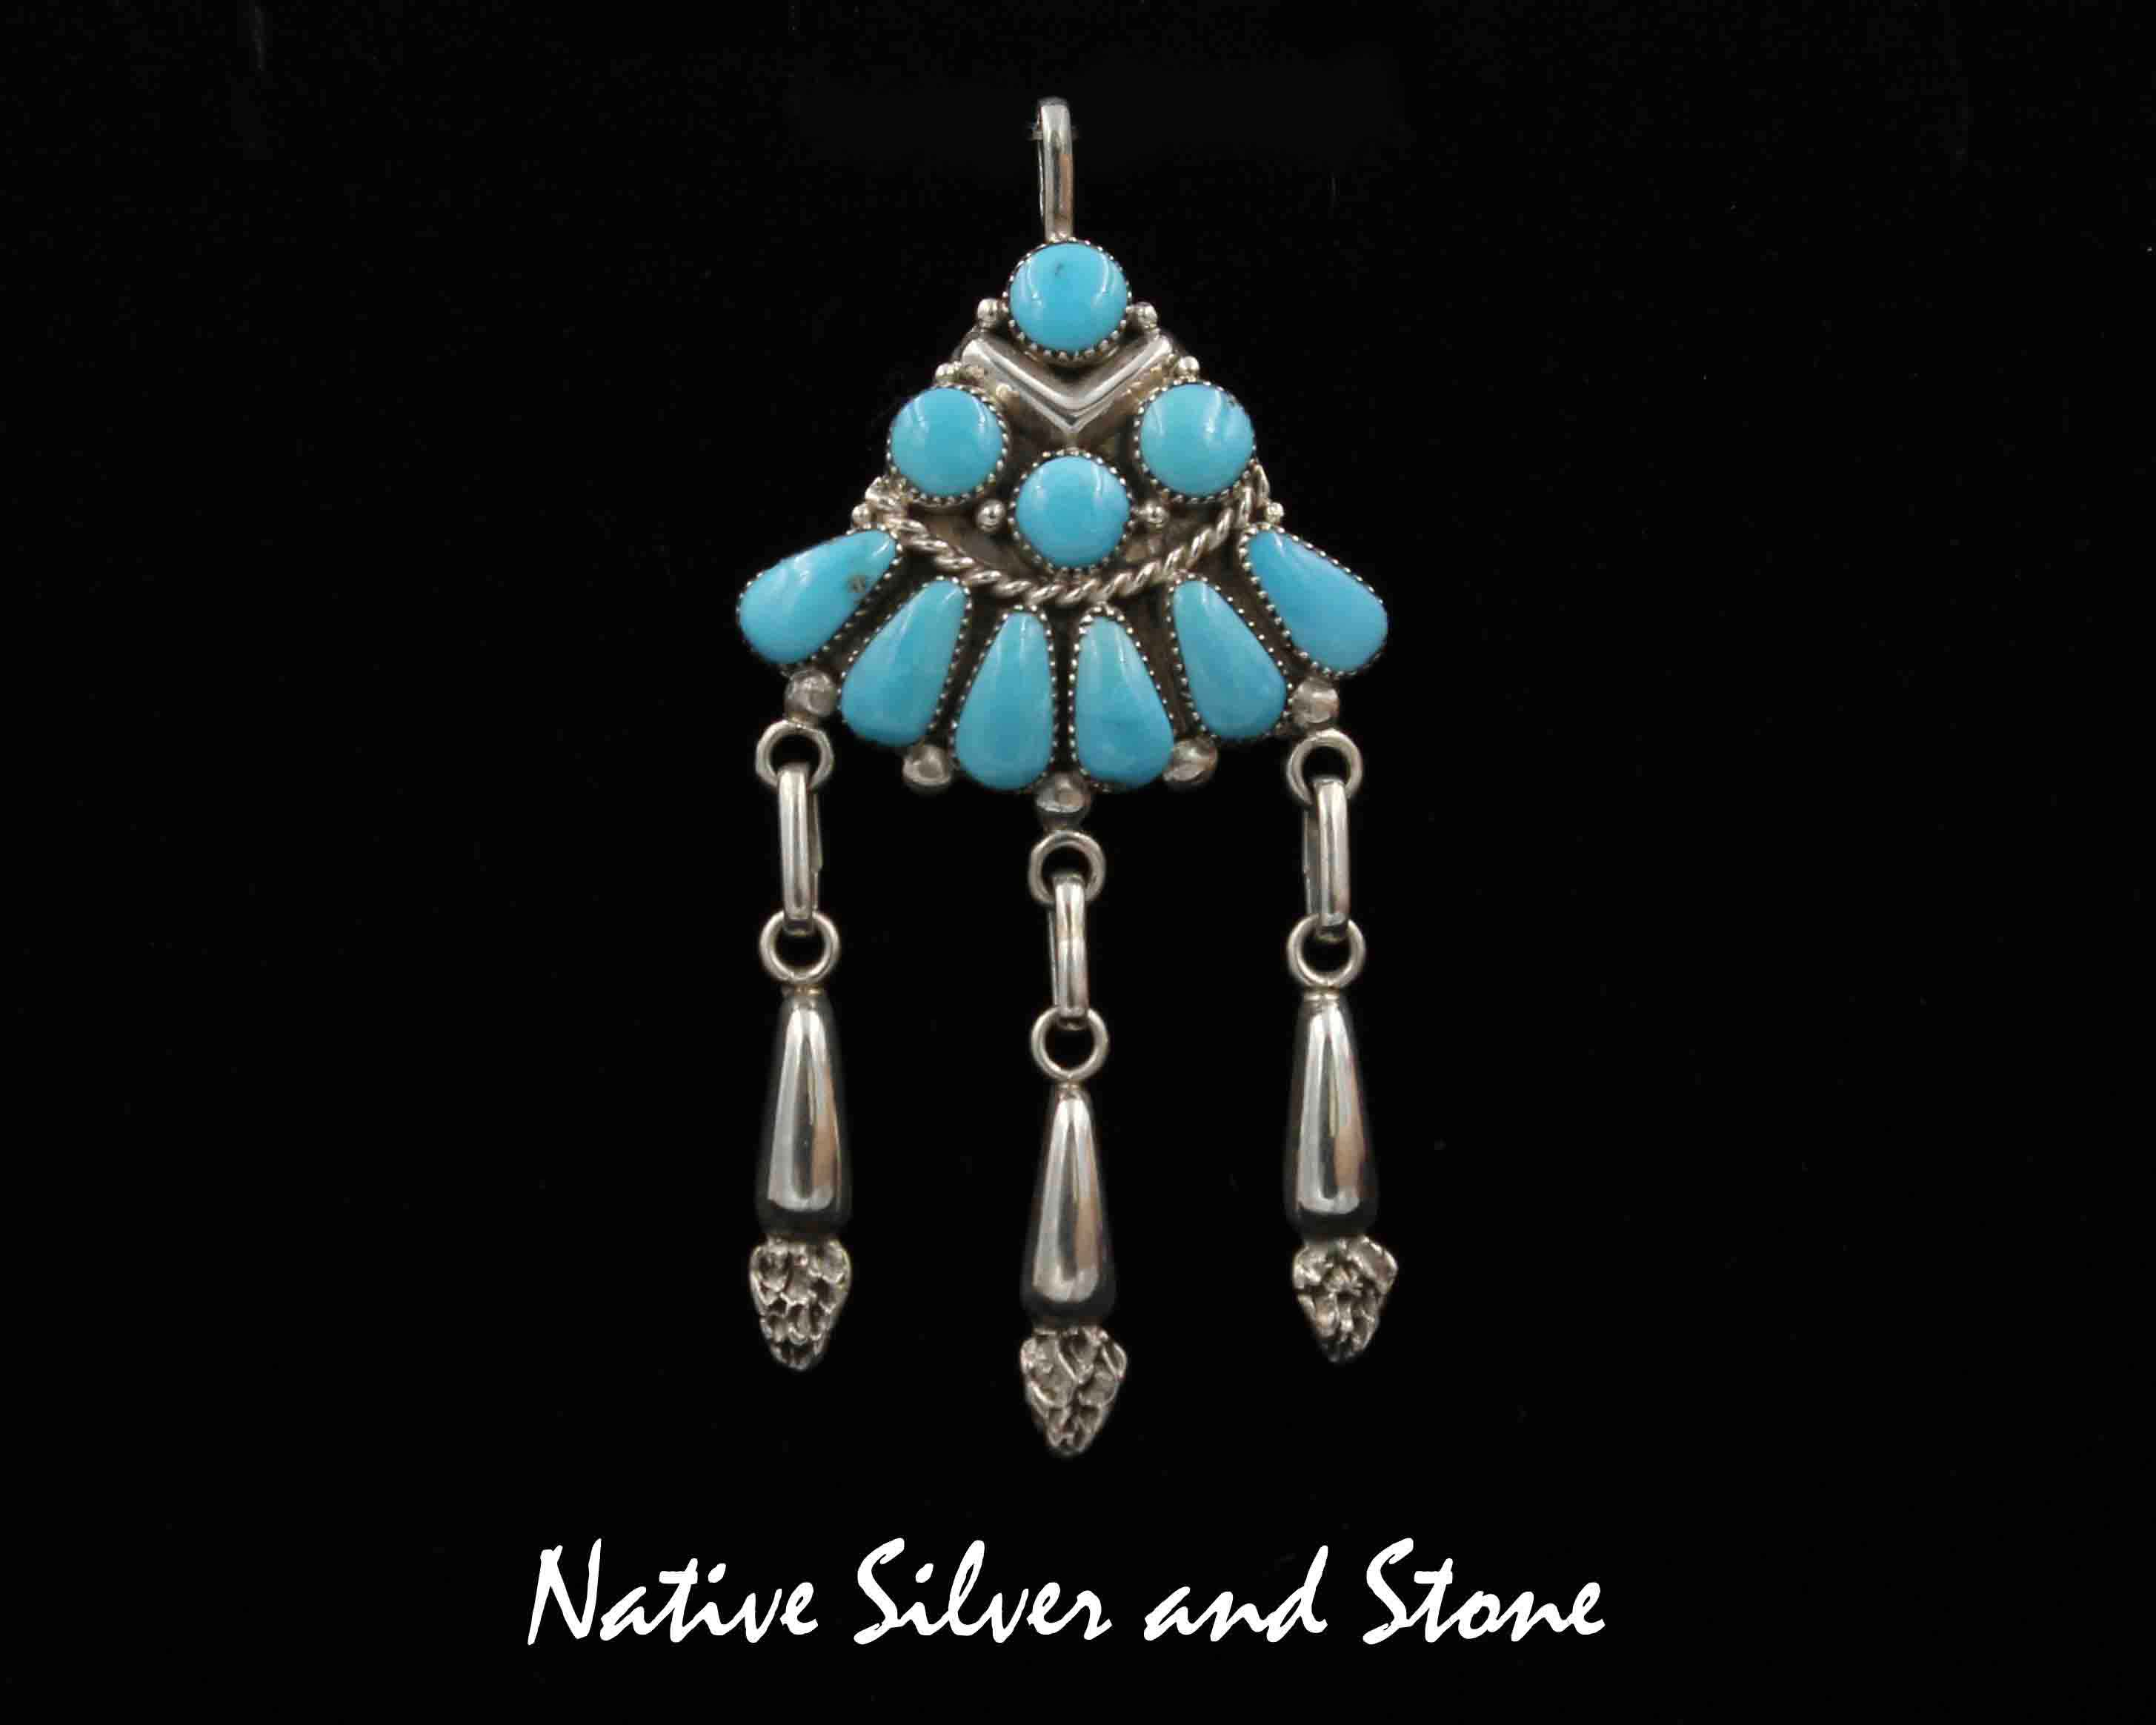 stone multi necklace opal native style sterling jewelry and geometric inlay set pendant pin zuni patterned earrings american